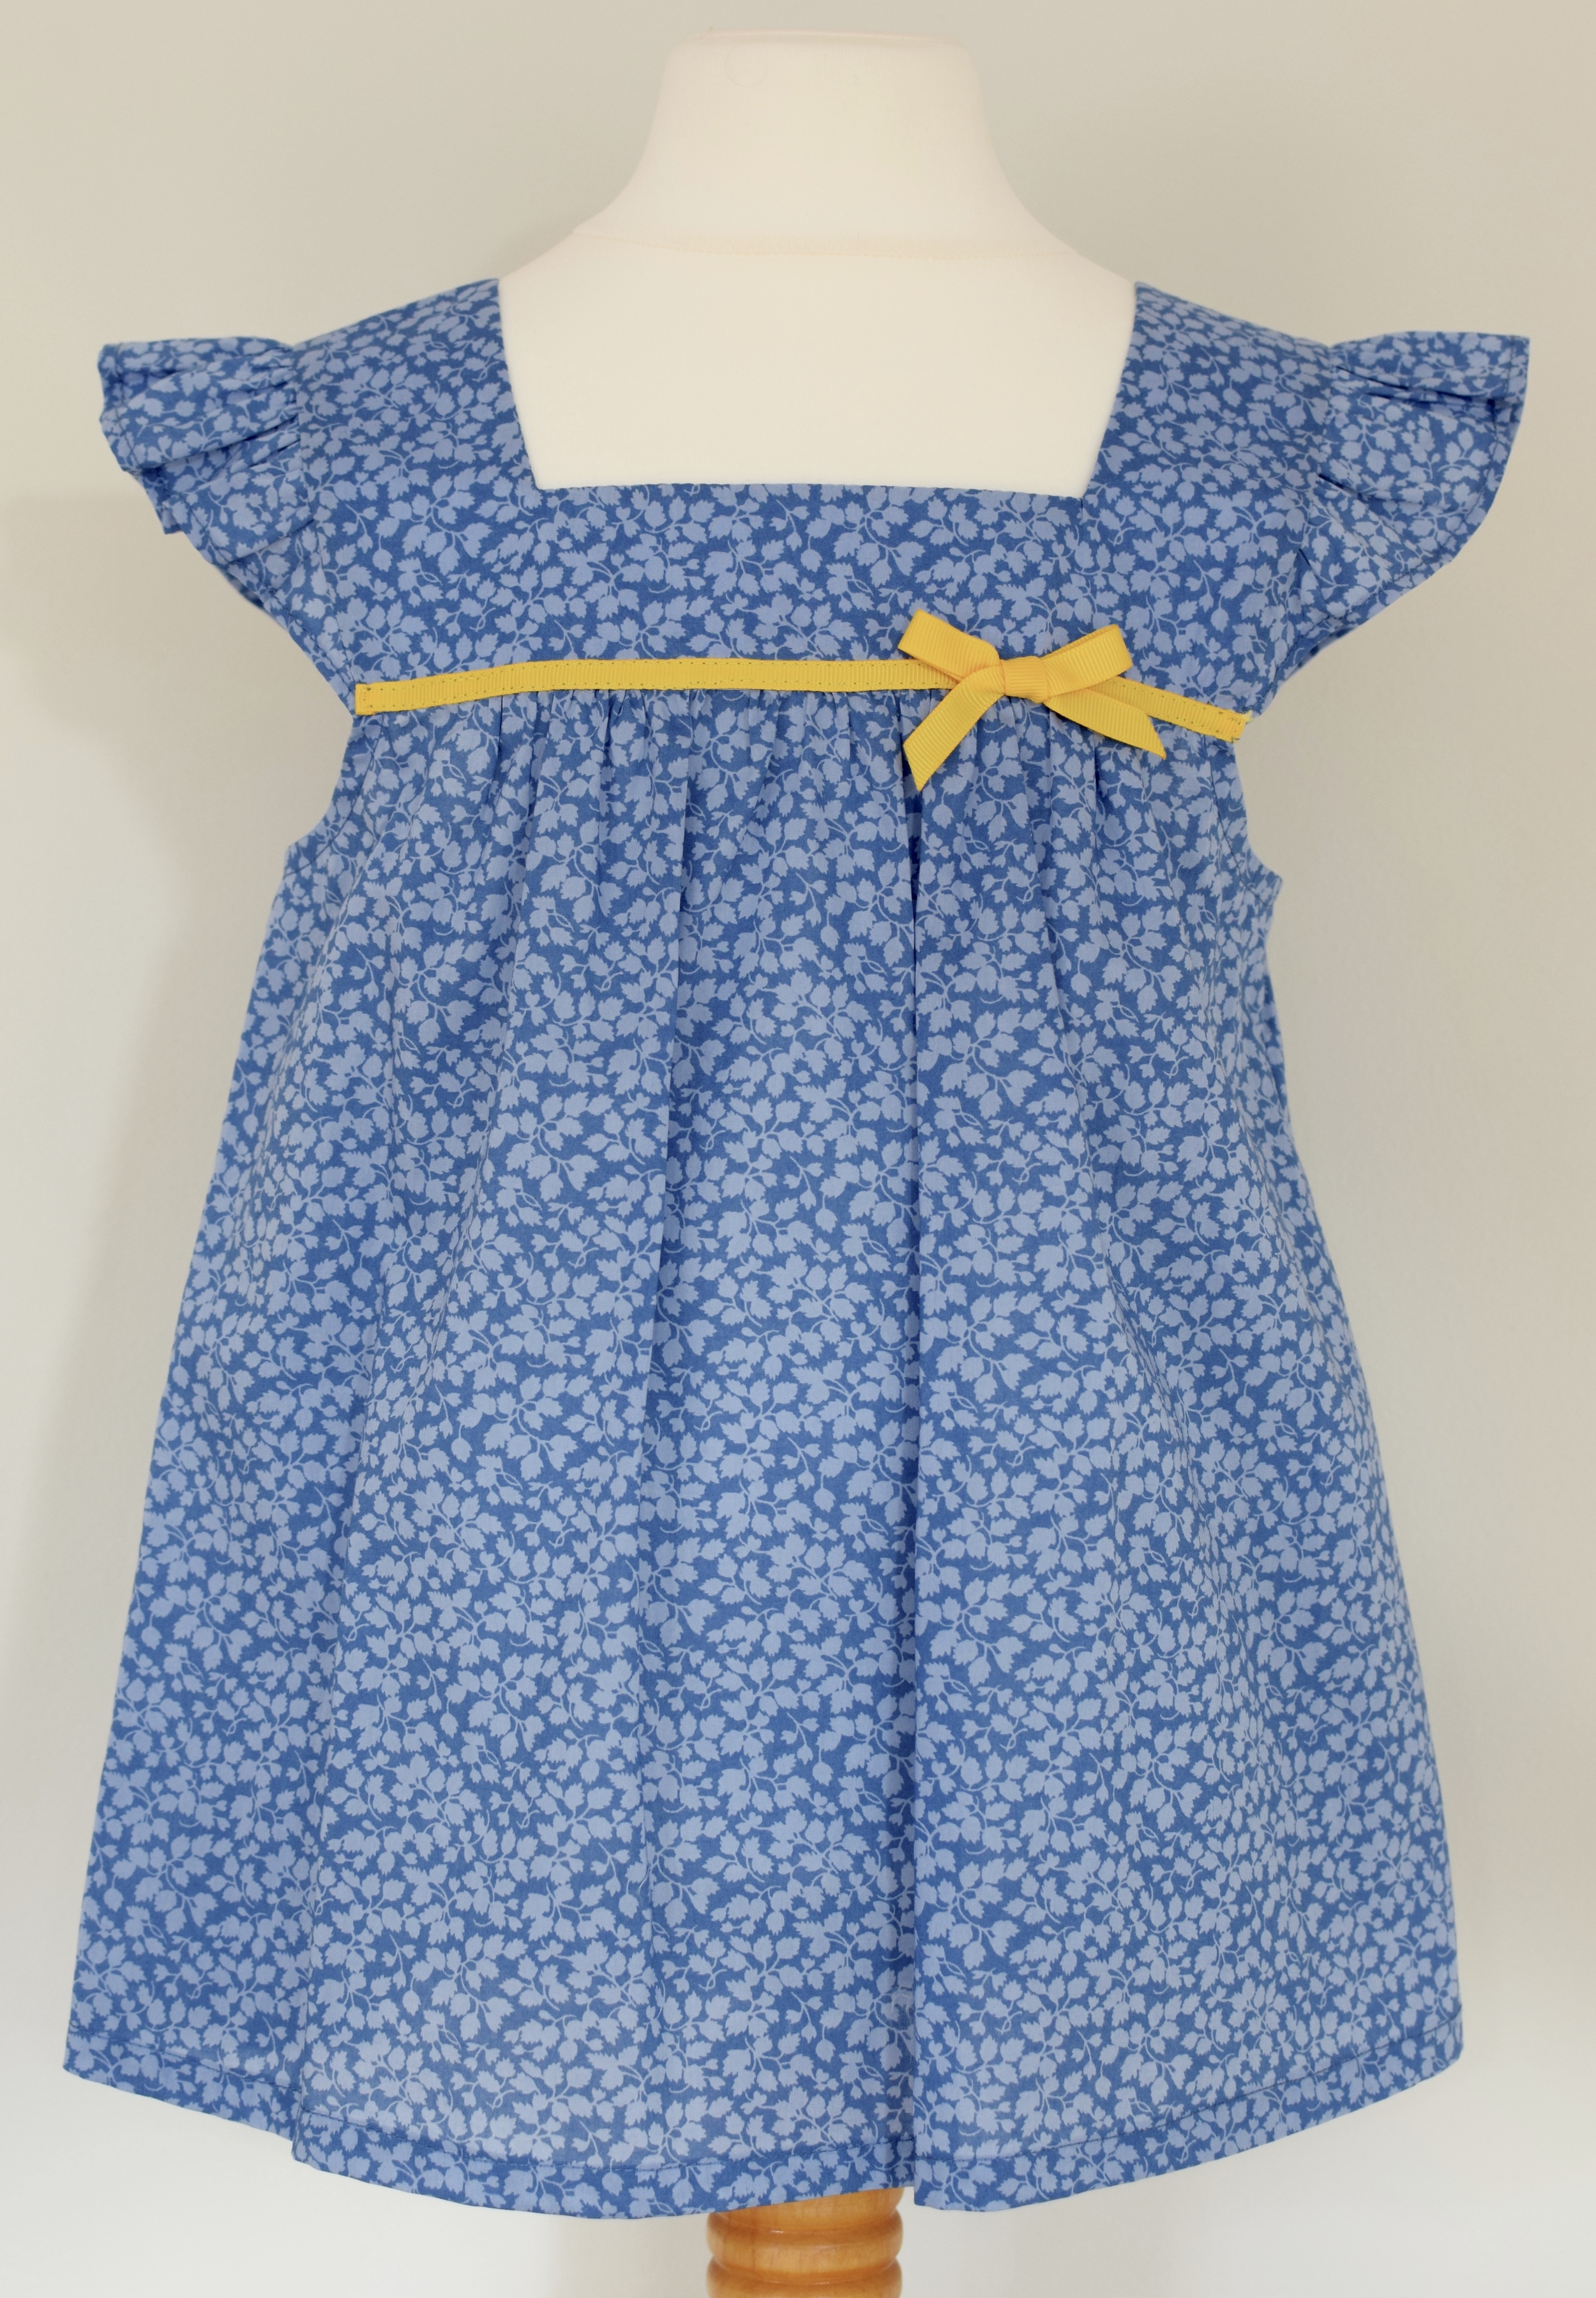 Liberty Glenjade blue   Liberty print,ruffle sleeves, square neck top with a fixed yellow grosgrain ribbon.  Available in size large  £35